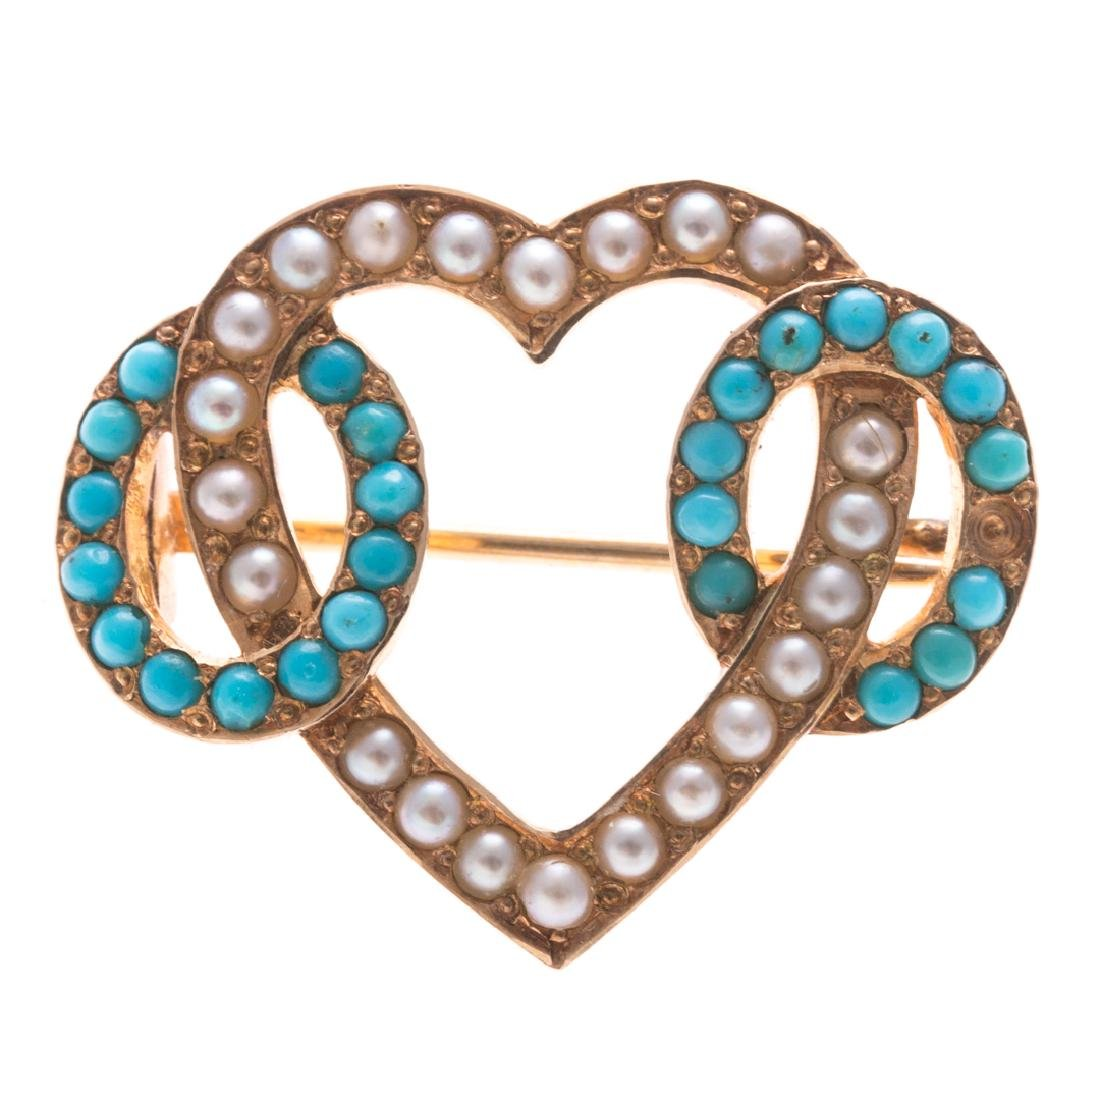 A Lady's Turquoise & Seed Pearl Pin & Ring in Gold - 2